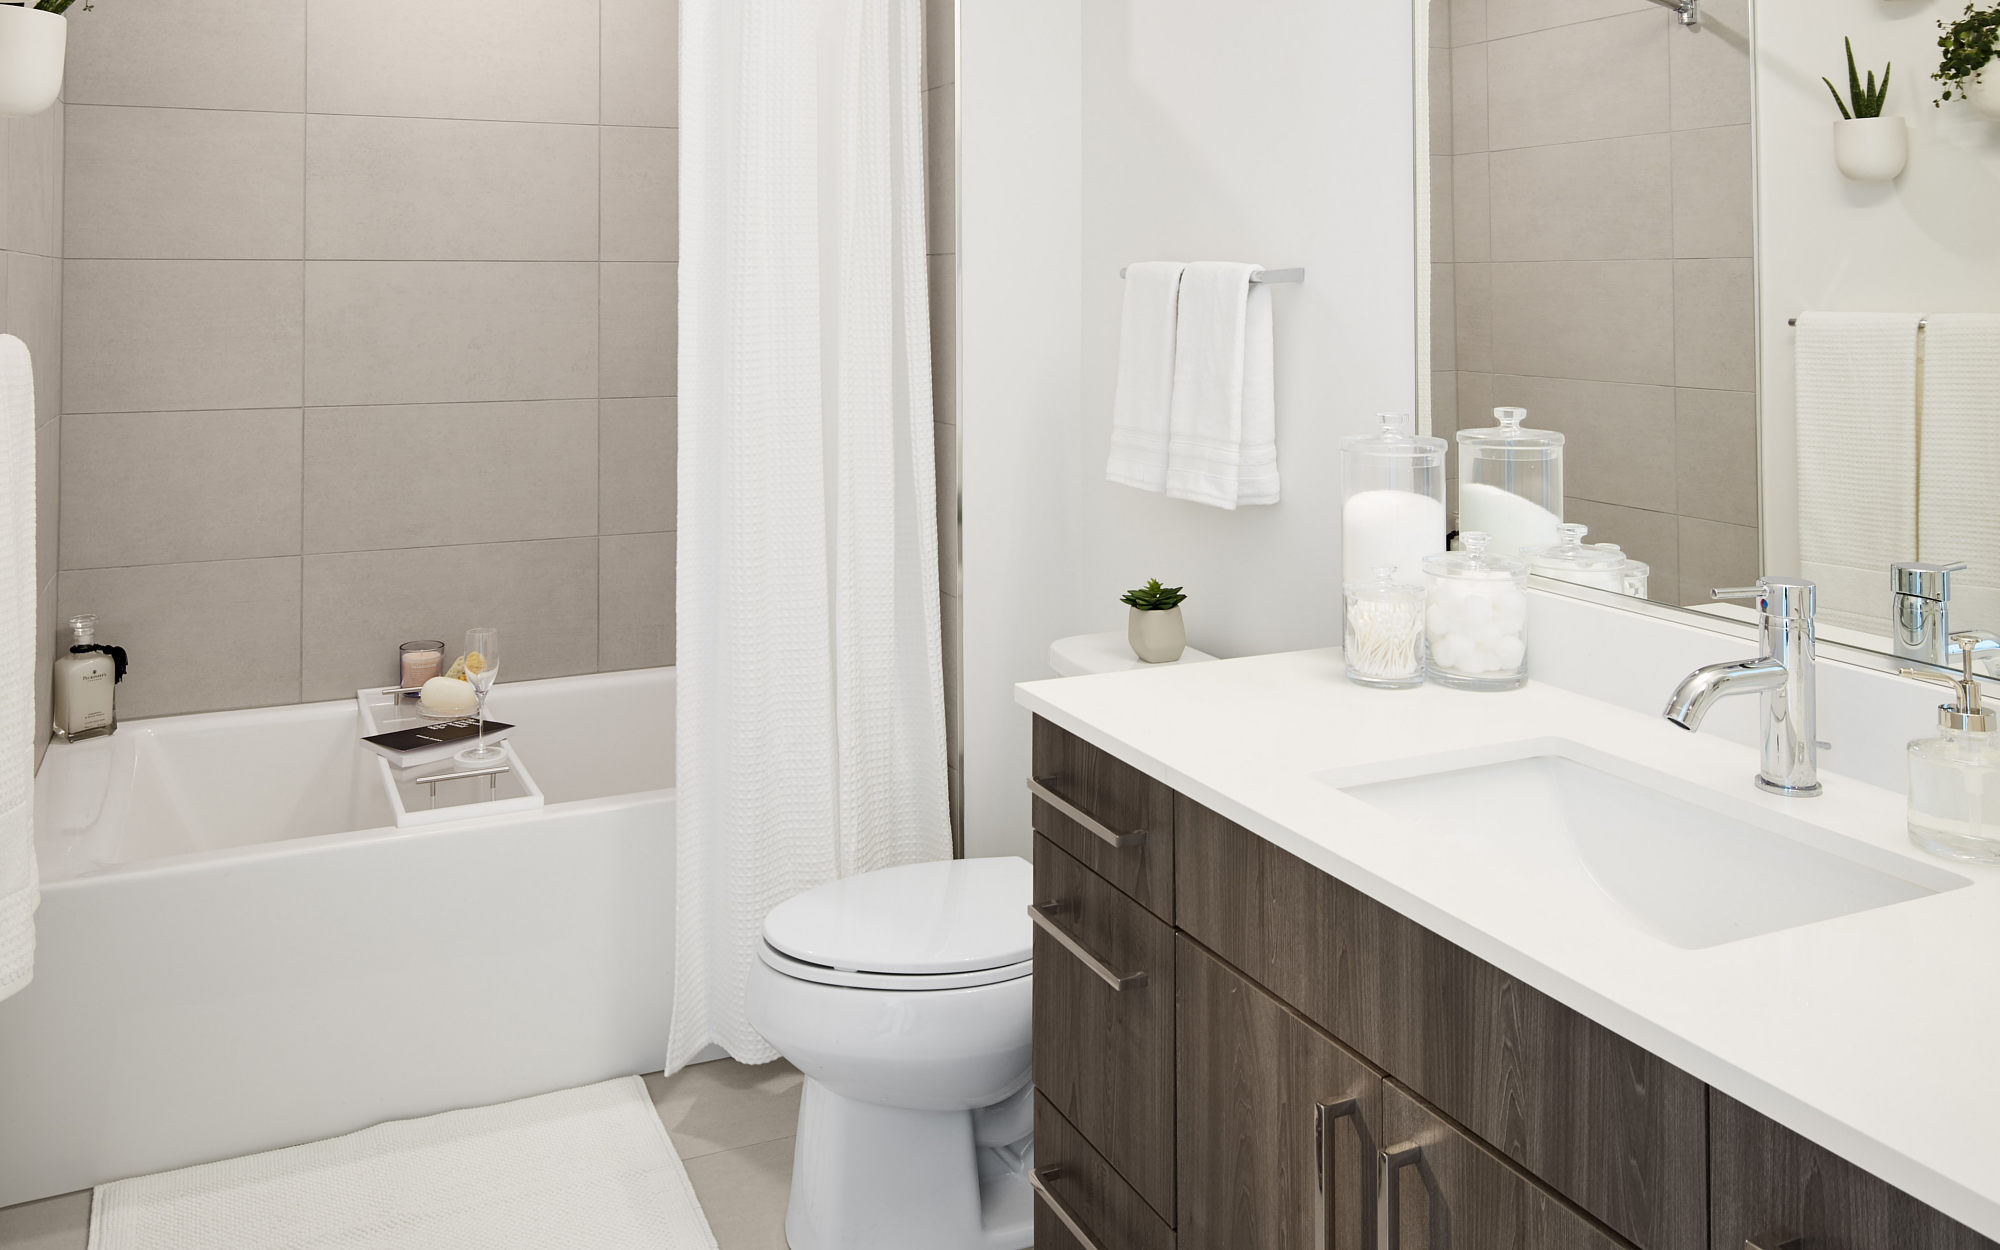 Essex model bathroom with bath